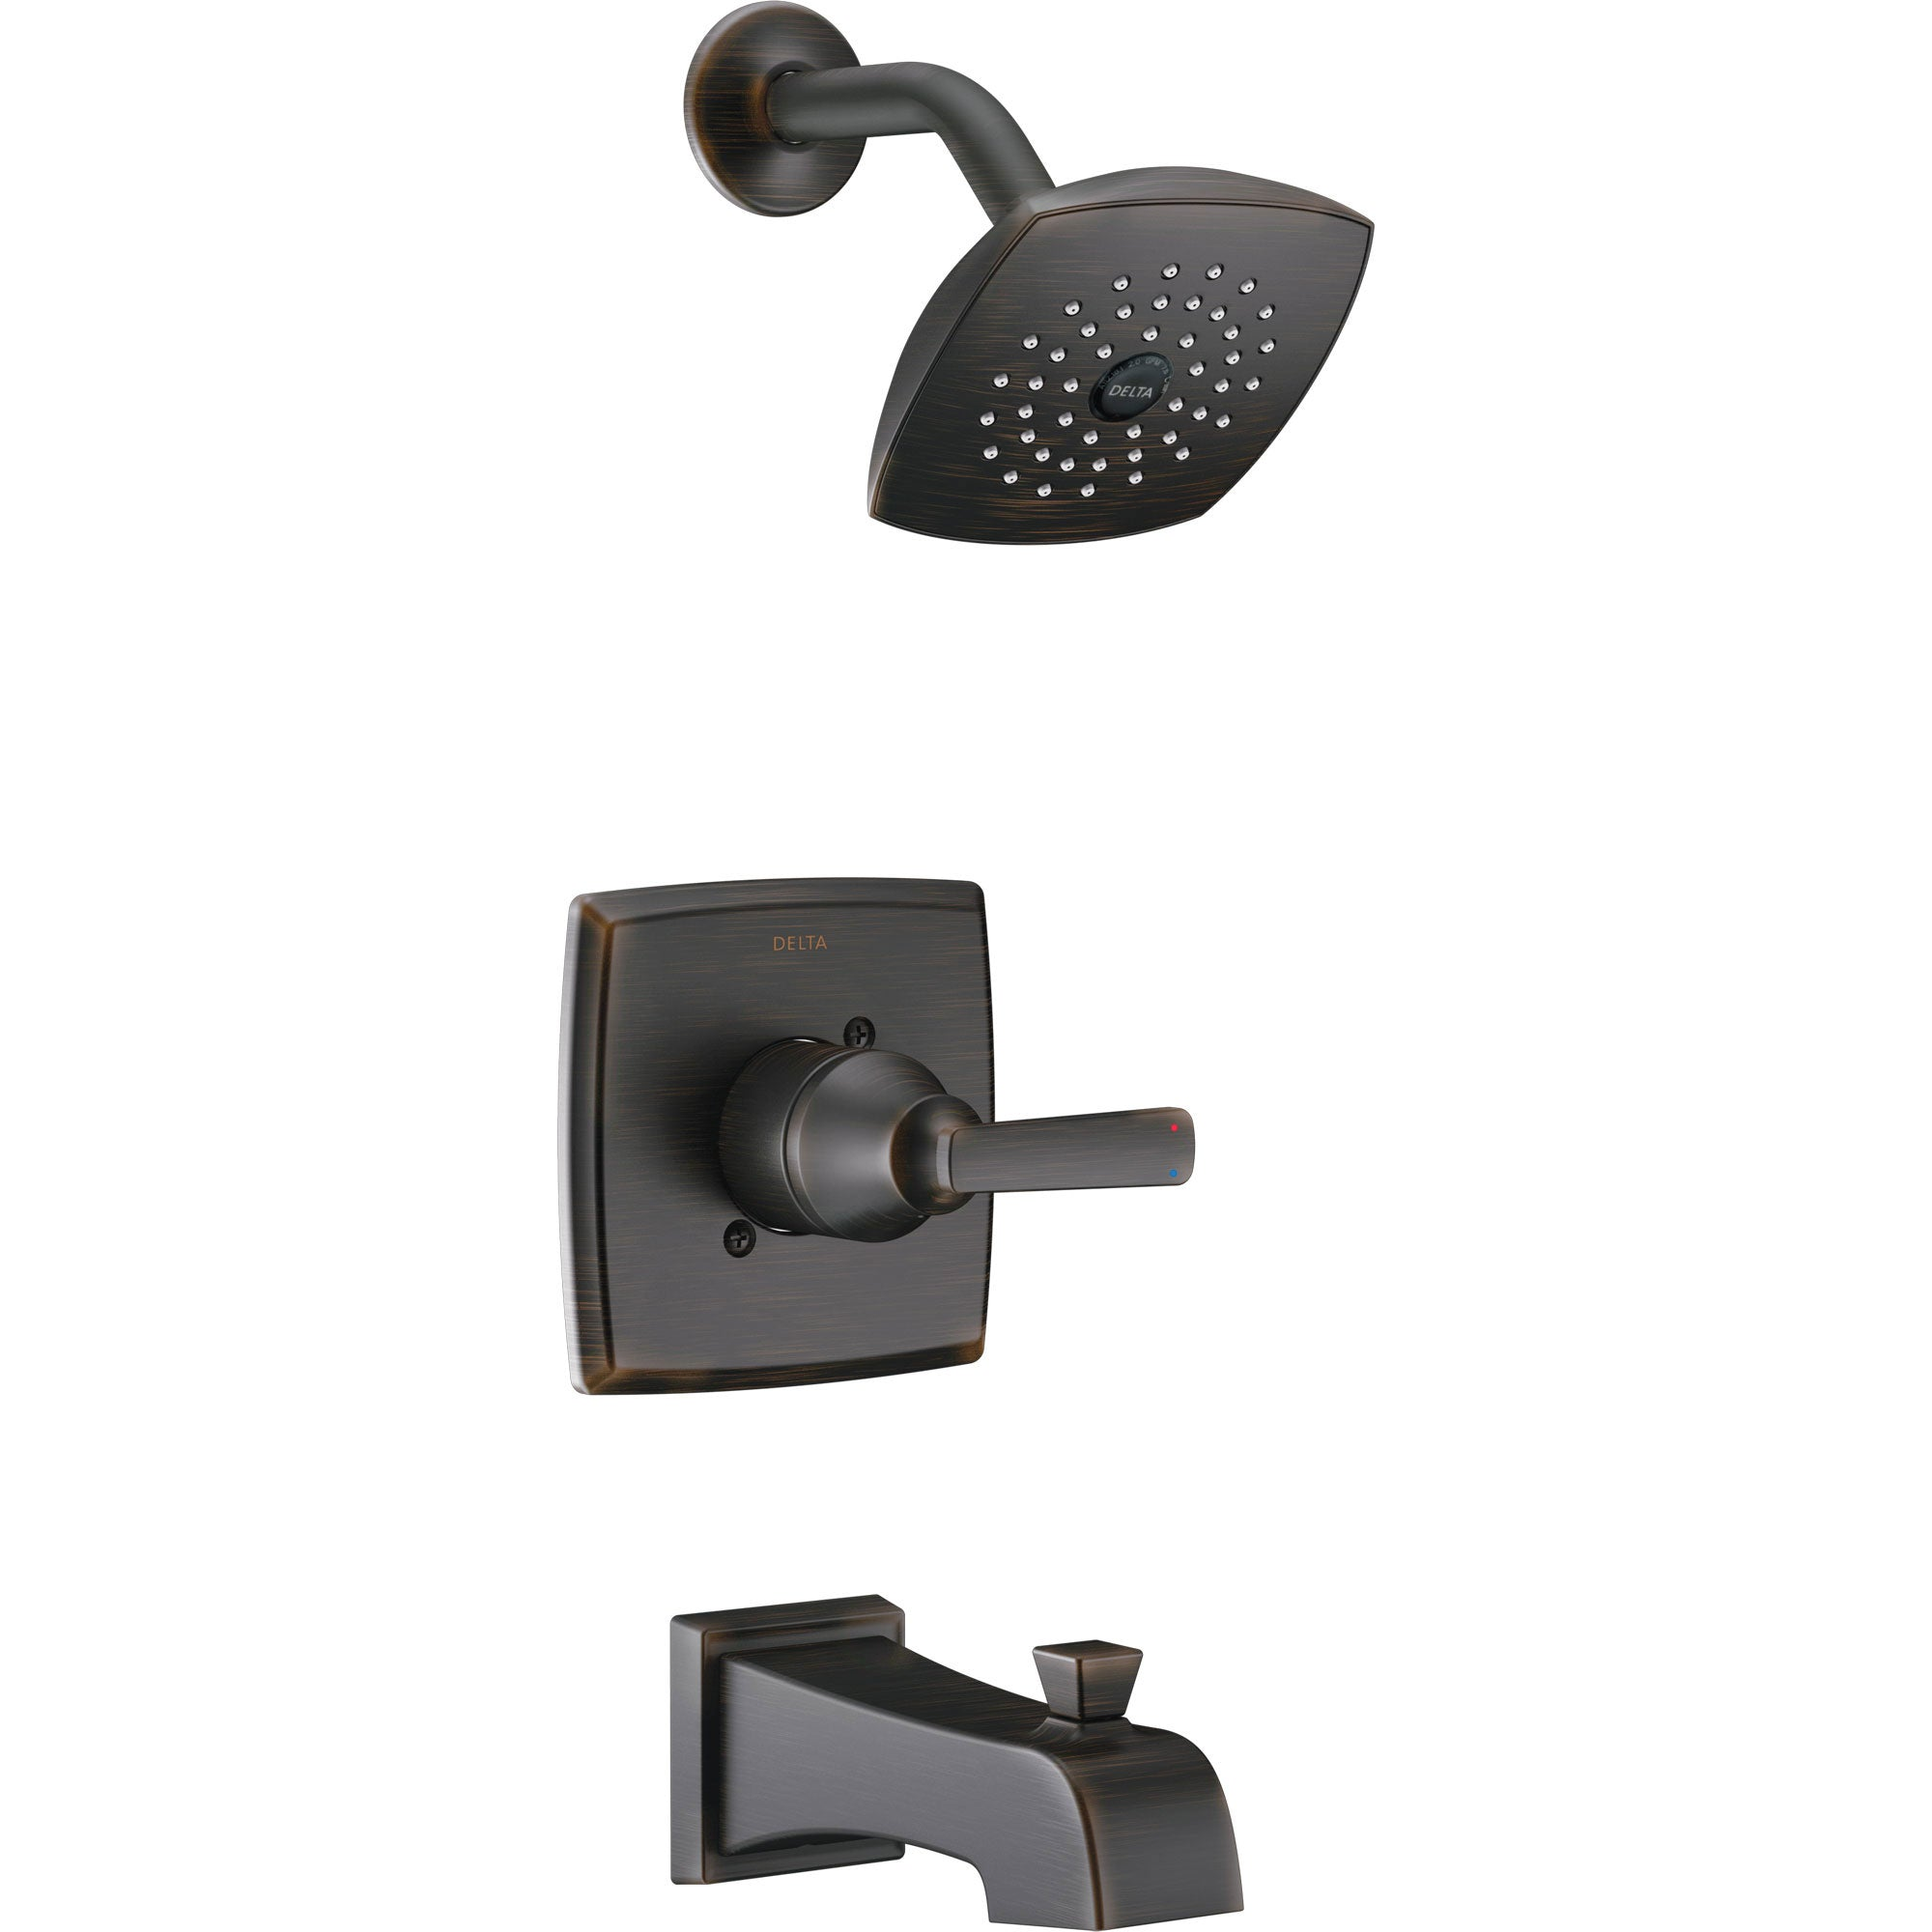 Delta Ashlyn Modern Venetian Bronze Finish 14 Series Watersense Single Handle Tub and Shower Combination Faucet INCLUDES Rough-in Valve D1172V